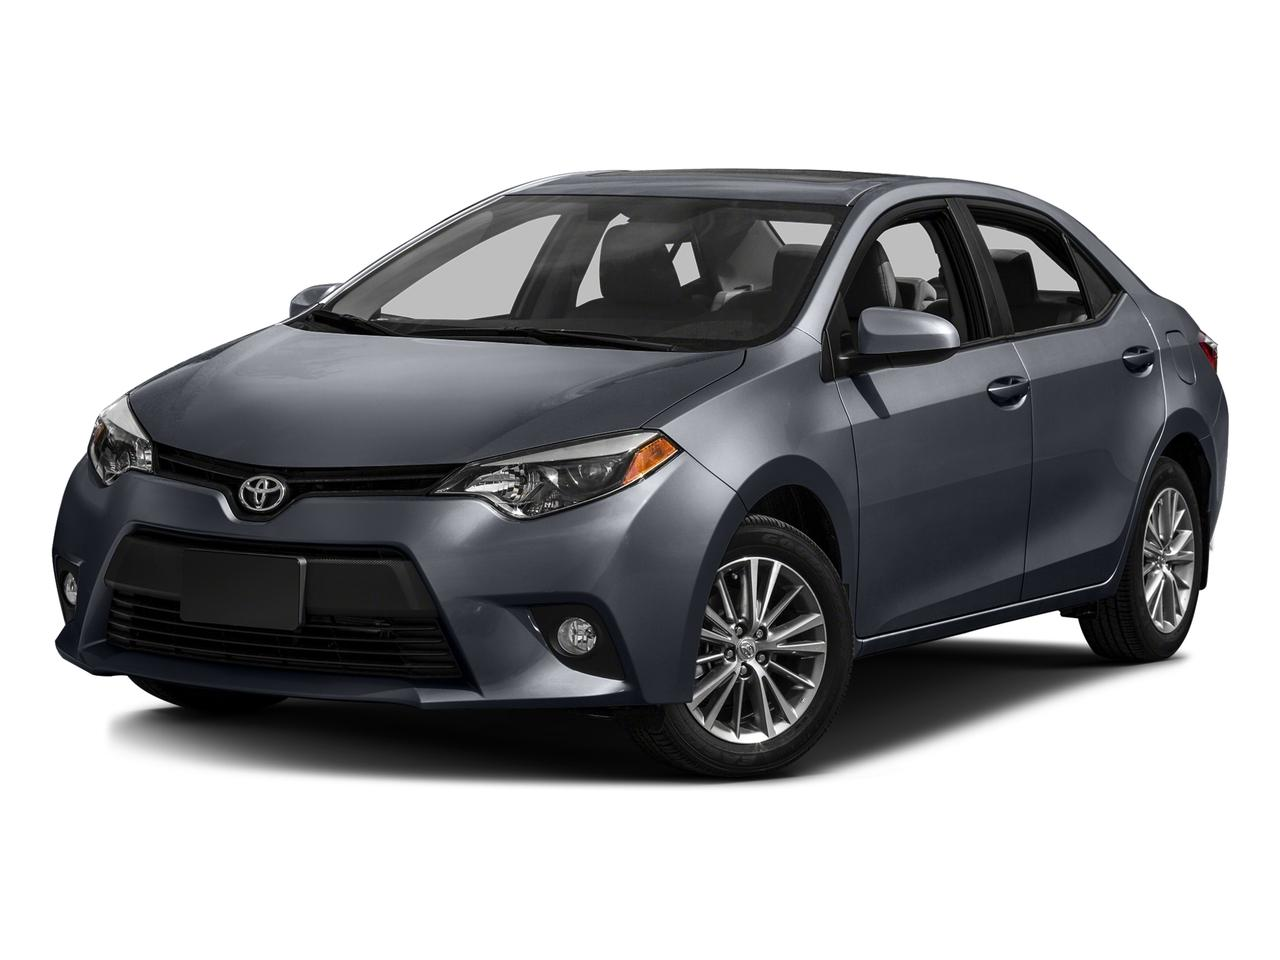 2016 Toyota Corolla Vehicle Photo in Rockville, MD 20852